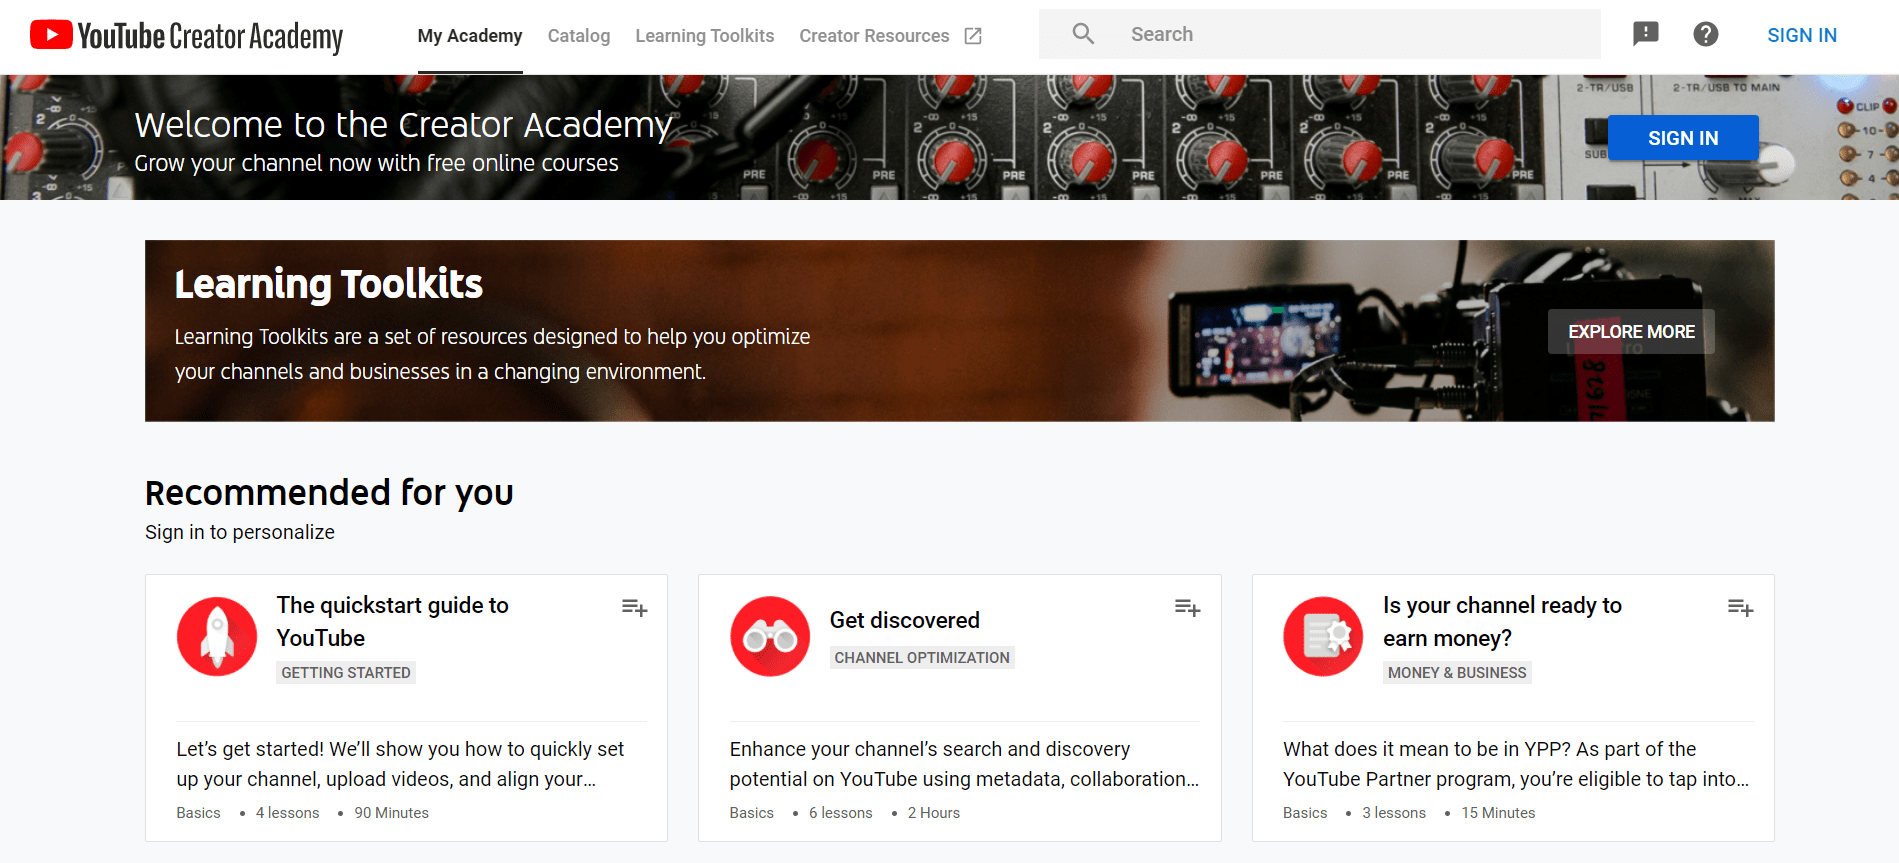 Start A YouTube Channel, Lifestyle Business Ideas